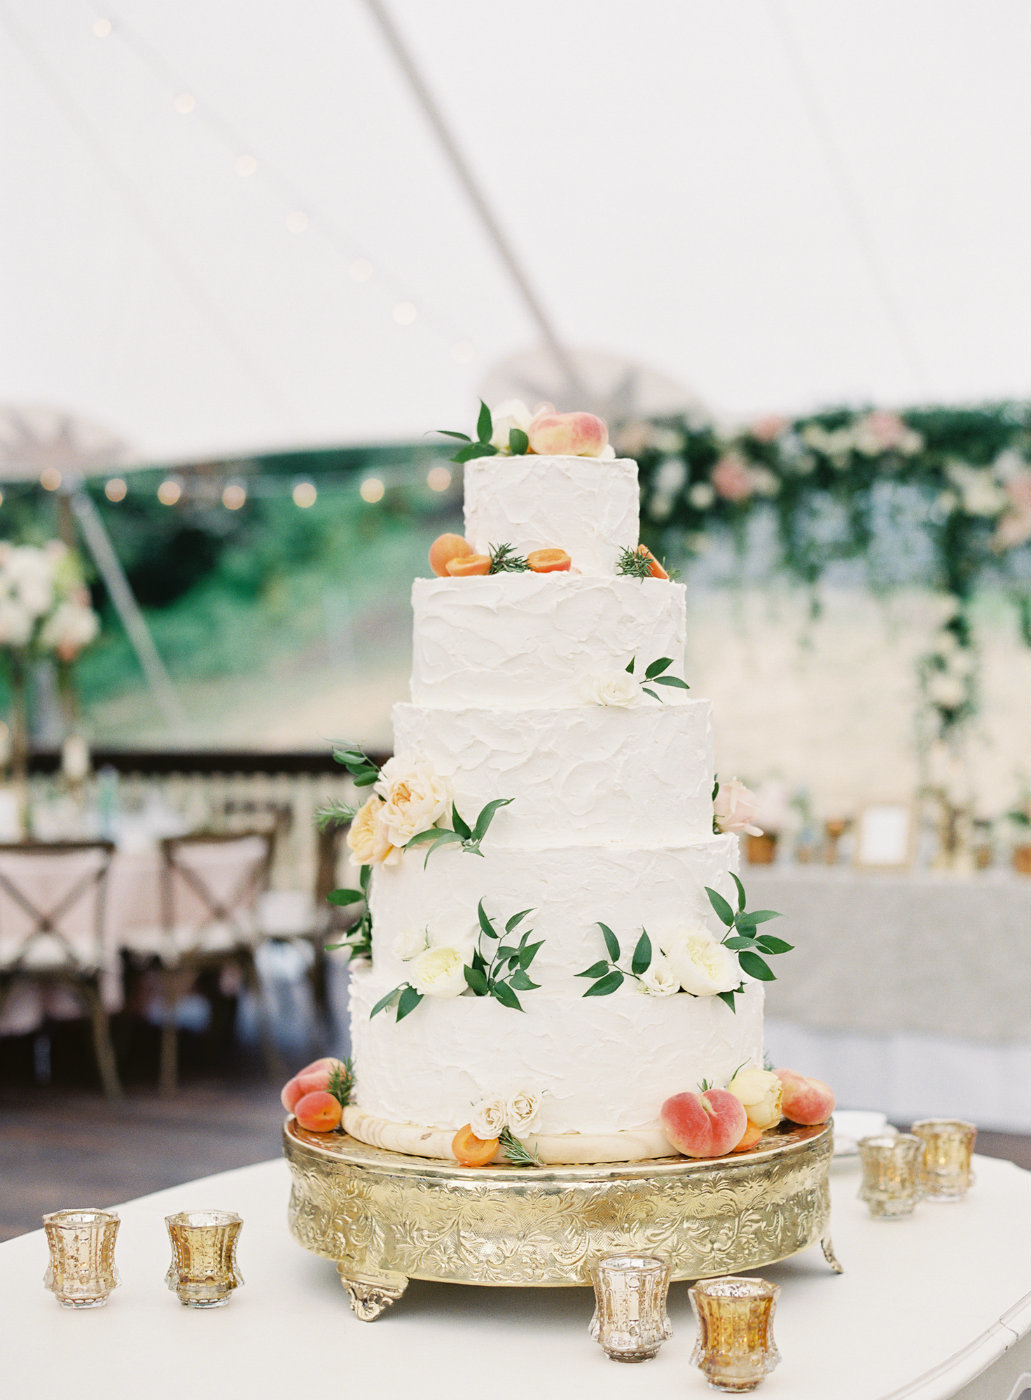 White layer cake decorated with roses, greens and peaches along with gold accents.